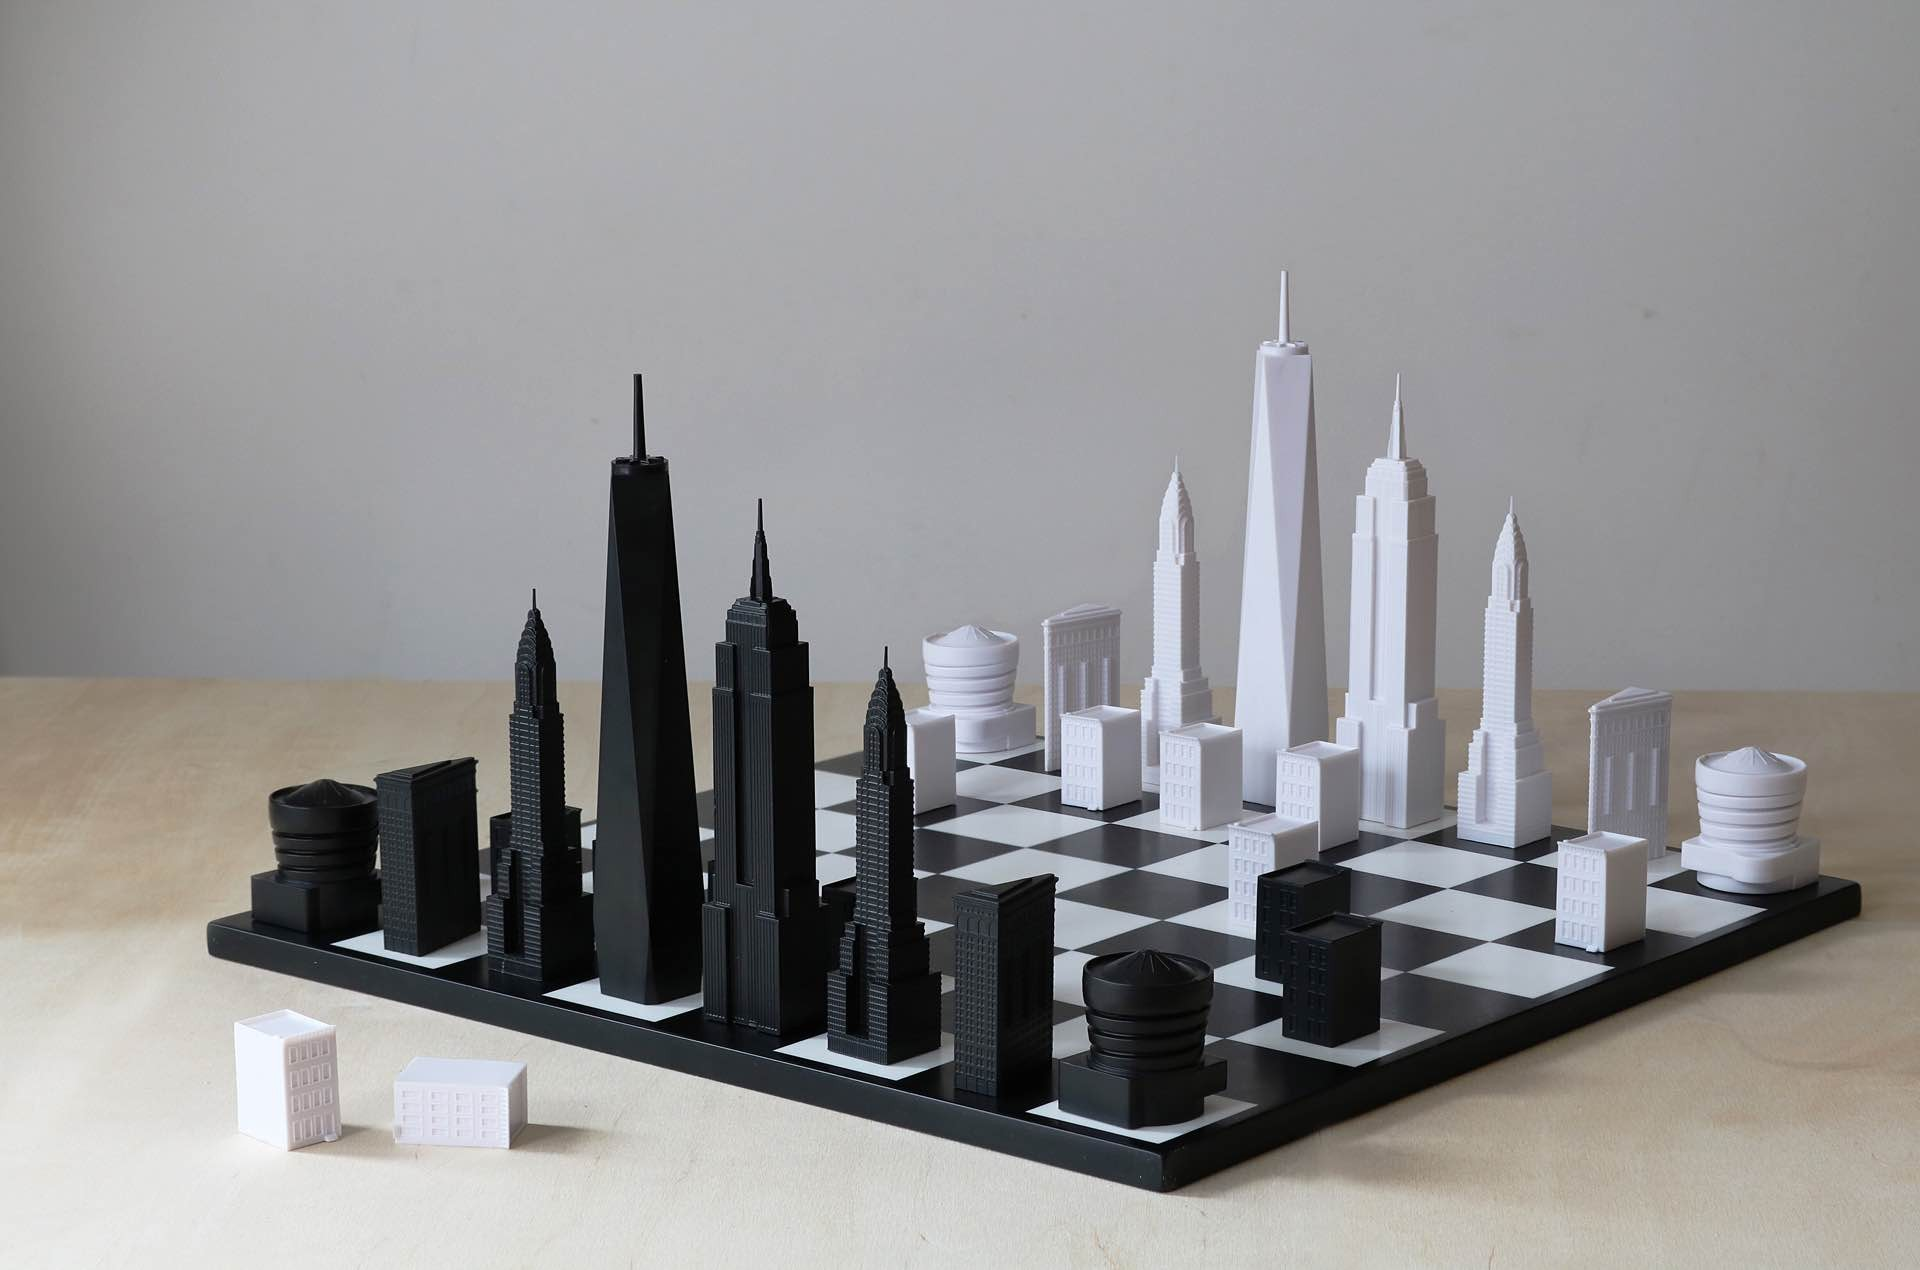 Skyline Chess chess sets. ($150 per city/set)